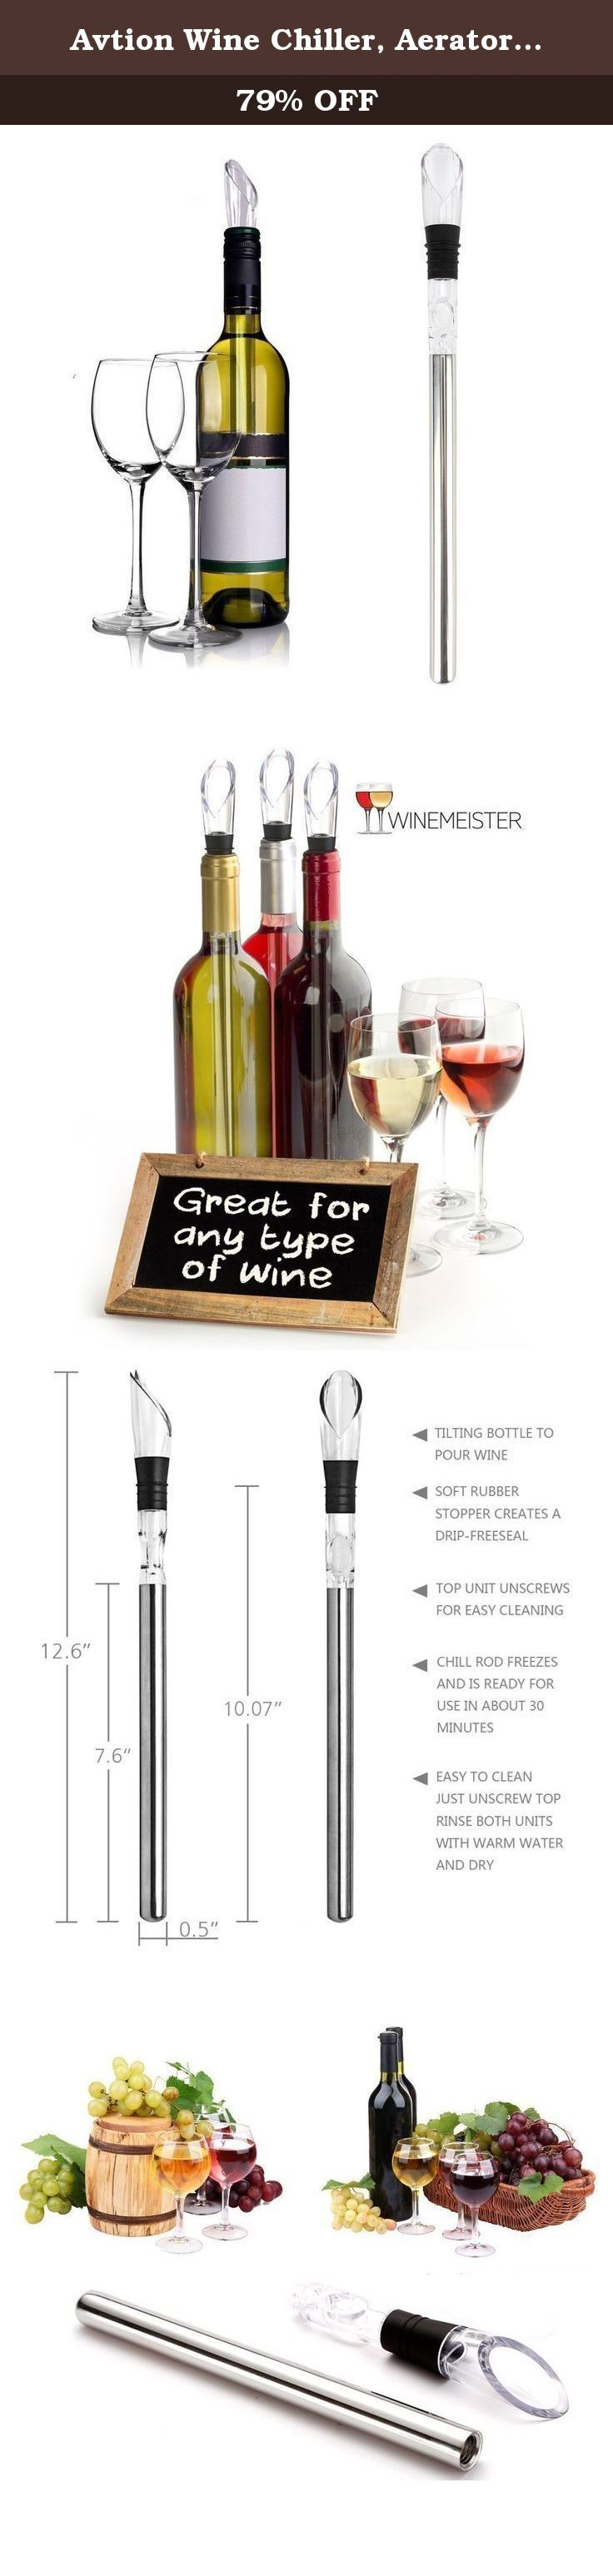 Avtion Wine Chiller, Aerator and Pourer: Enjoy a Glass of Perfectly Chilled Wine with the 3 in 1 Stainless Steel Wine Chill Rod (Mode 2). Family Care 3 in 1 wine chiller allows wine to be kept at the perfect drinking temperature without making it less tasty. MAIN FEATURES: • Easy to clean (hand-wash only) • Stainless chiller stick keeps wine chilled for 30 minutes • Pourer is well-designed and allows taste preservation MAIN BENEFITS: • BPA free stopper prevents leaking during pouring •…